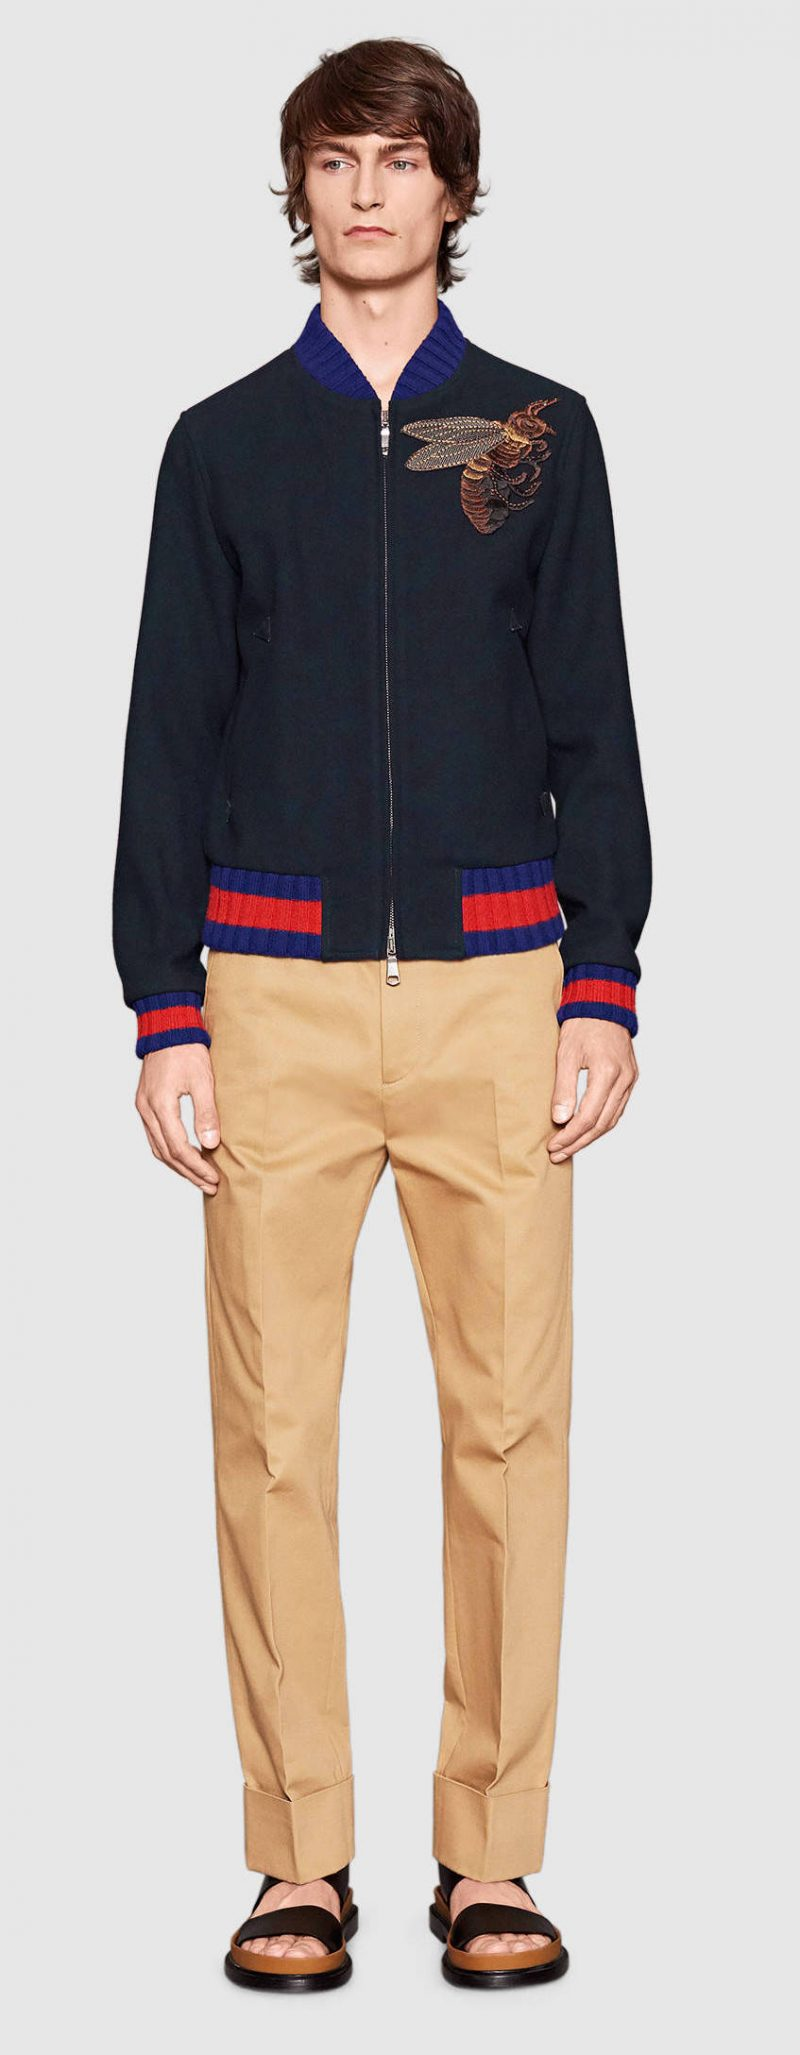 Gucci Wool Bomber Jacket with Bee Appliqué